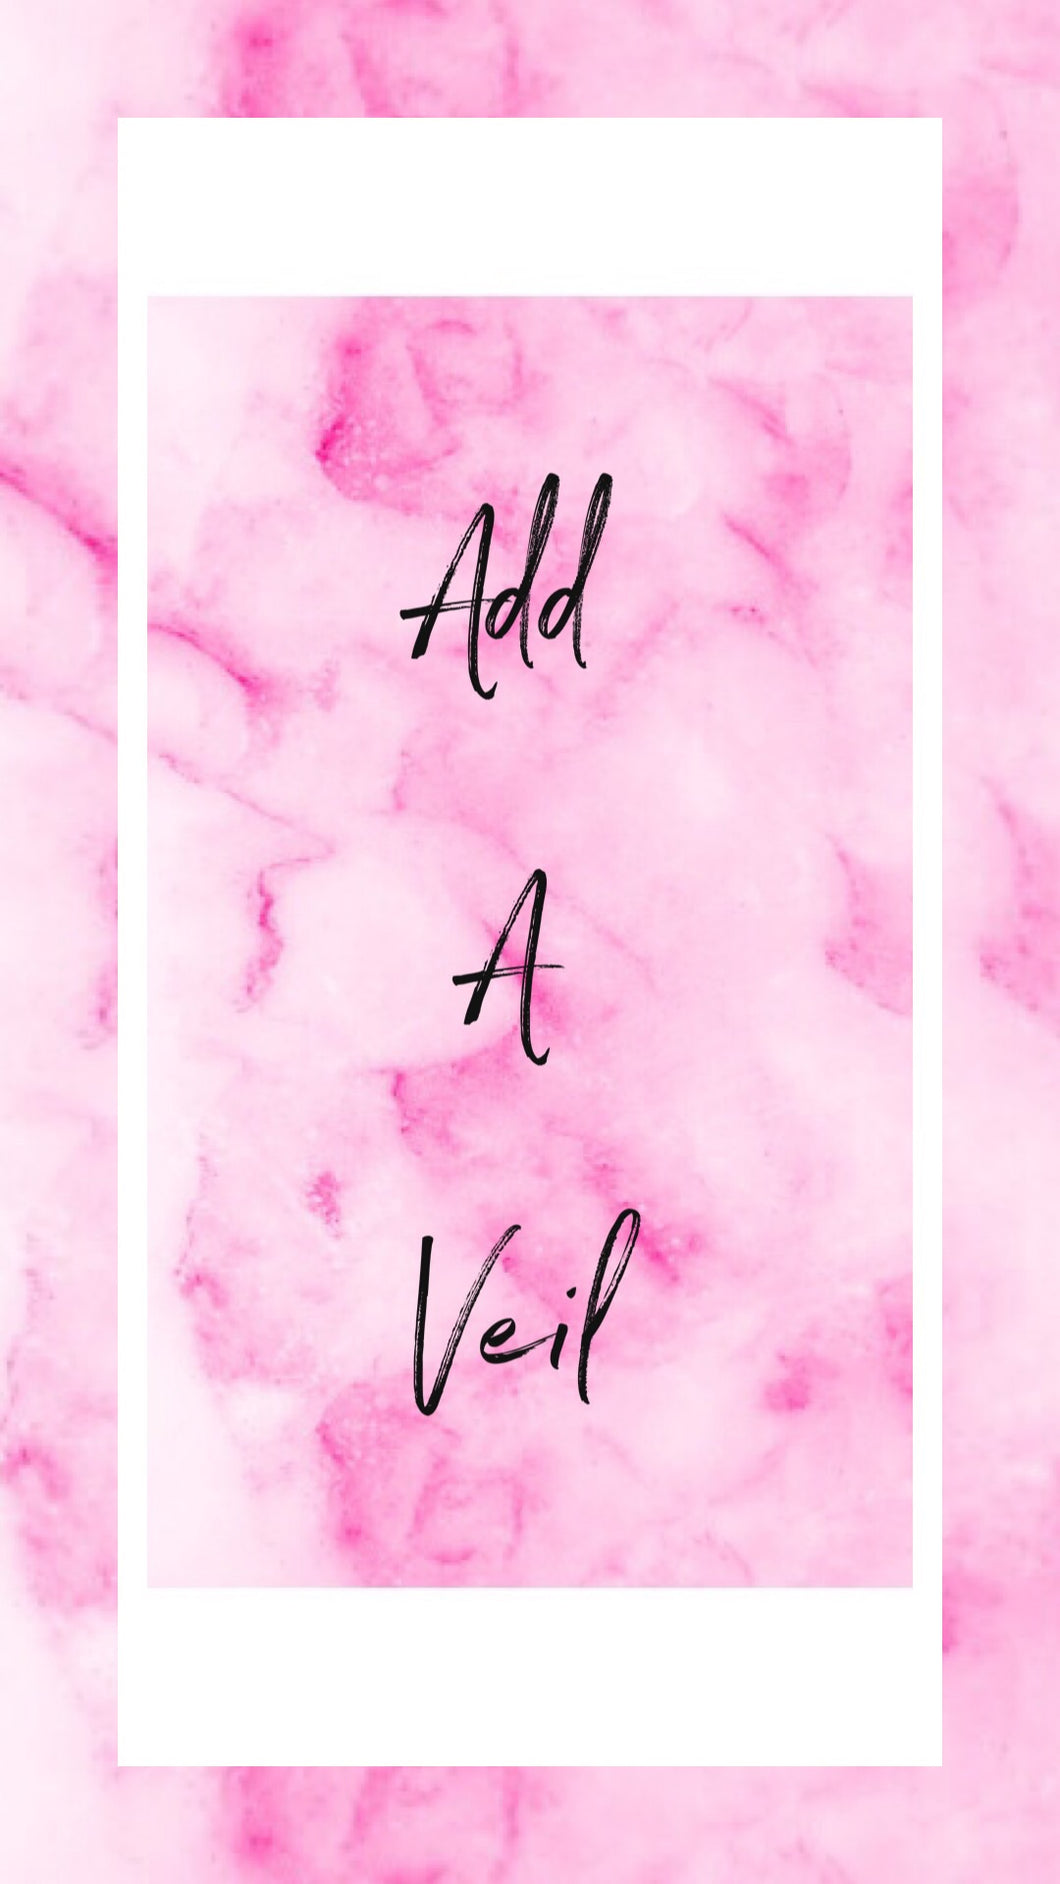 Add on - funky Veil